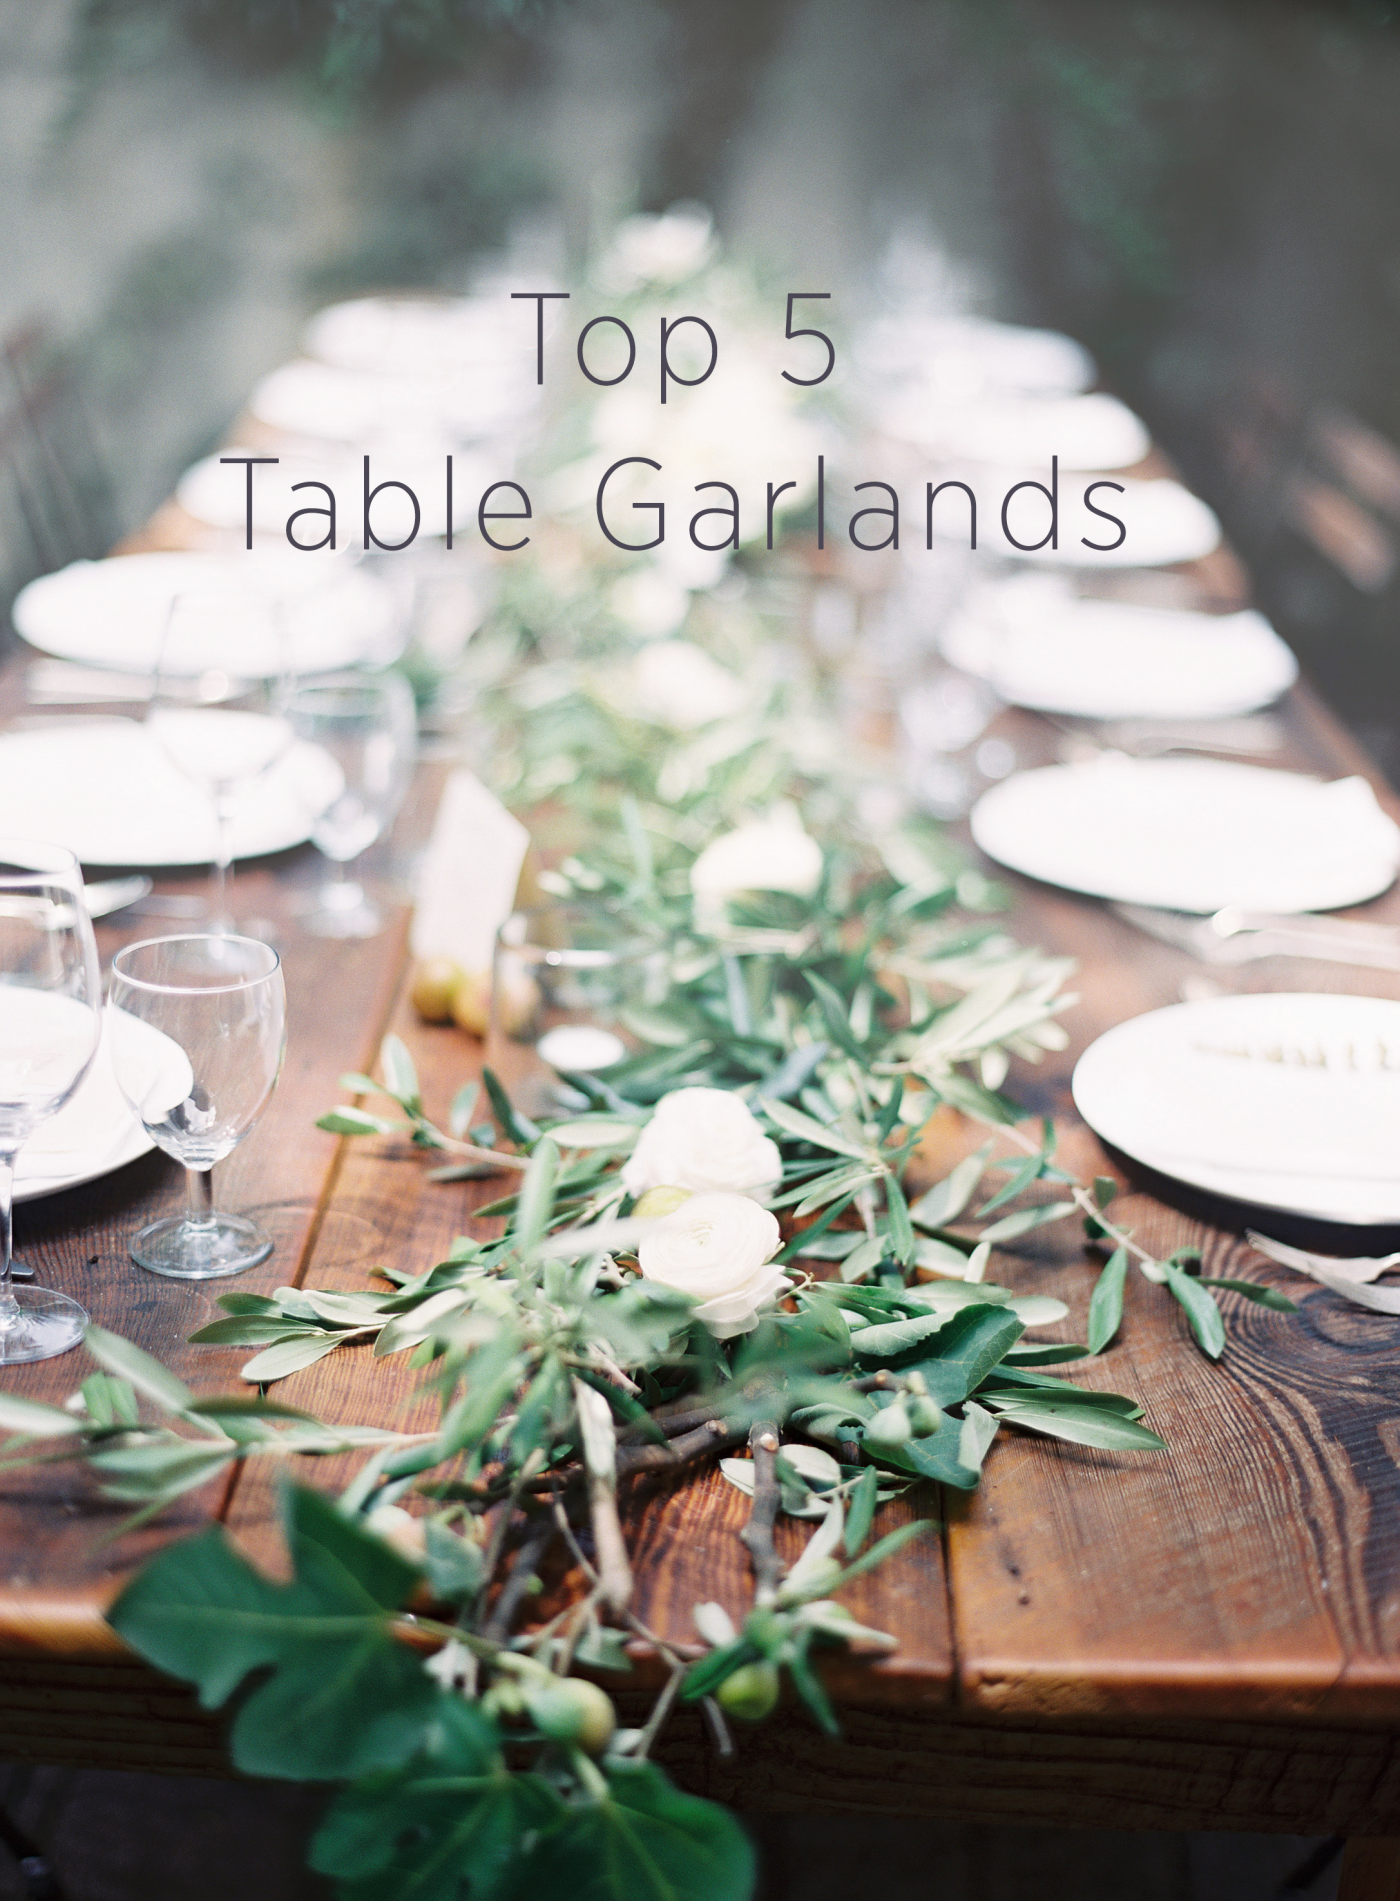 Top-5-Table-Garlands